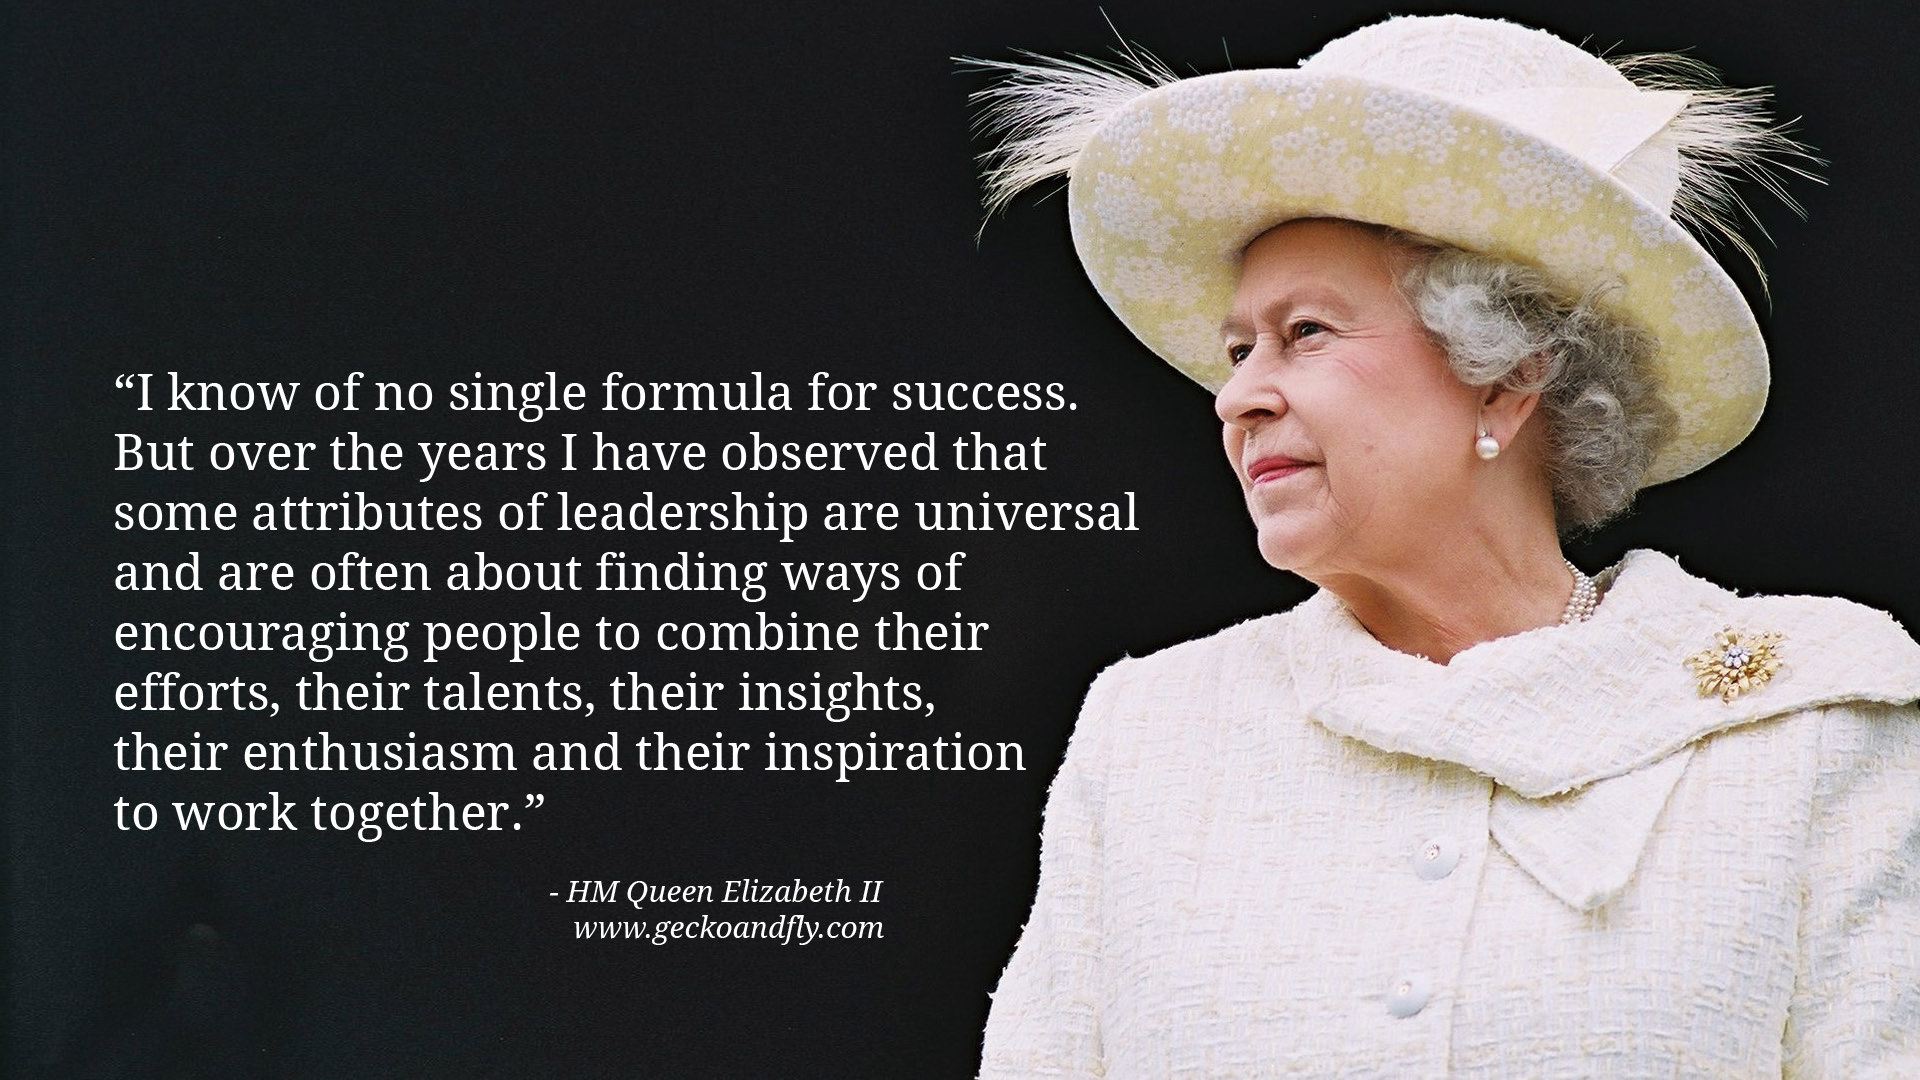 21 Inspiring Queen Elizabeth II Of The United Kingdom Quotes